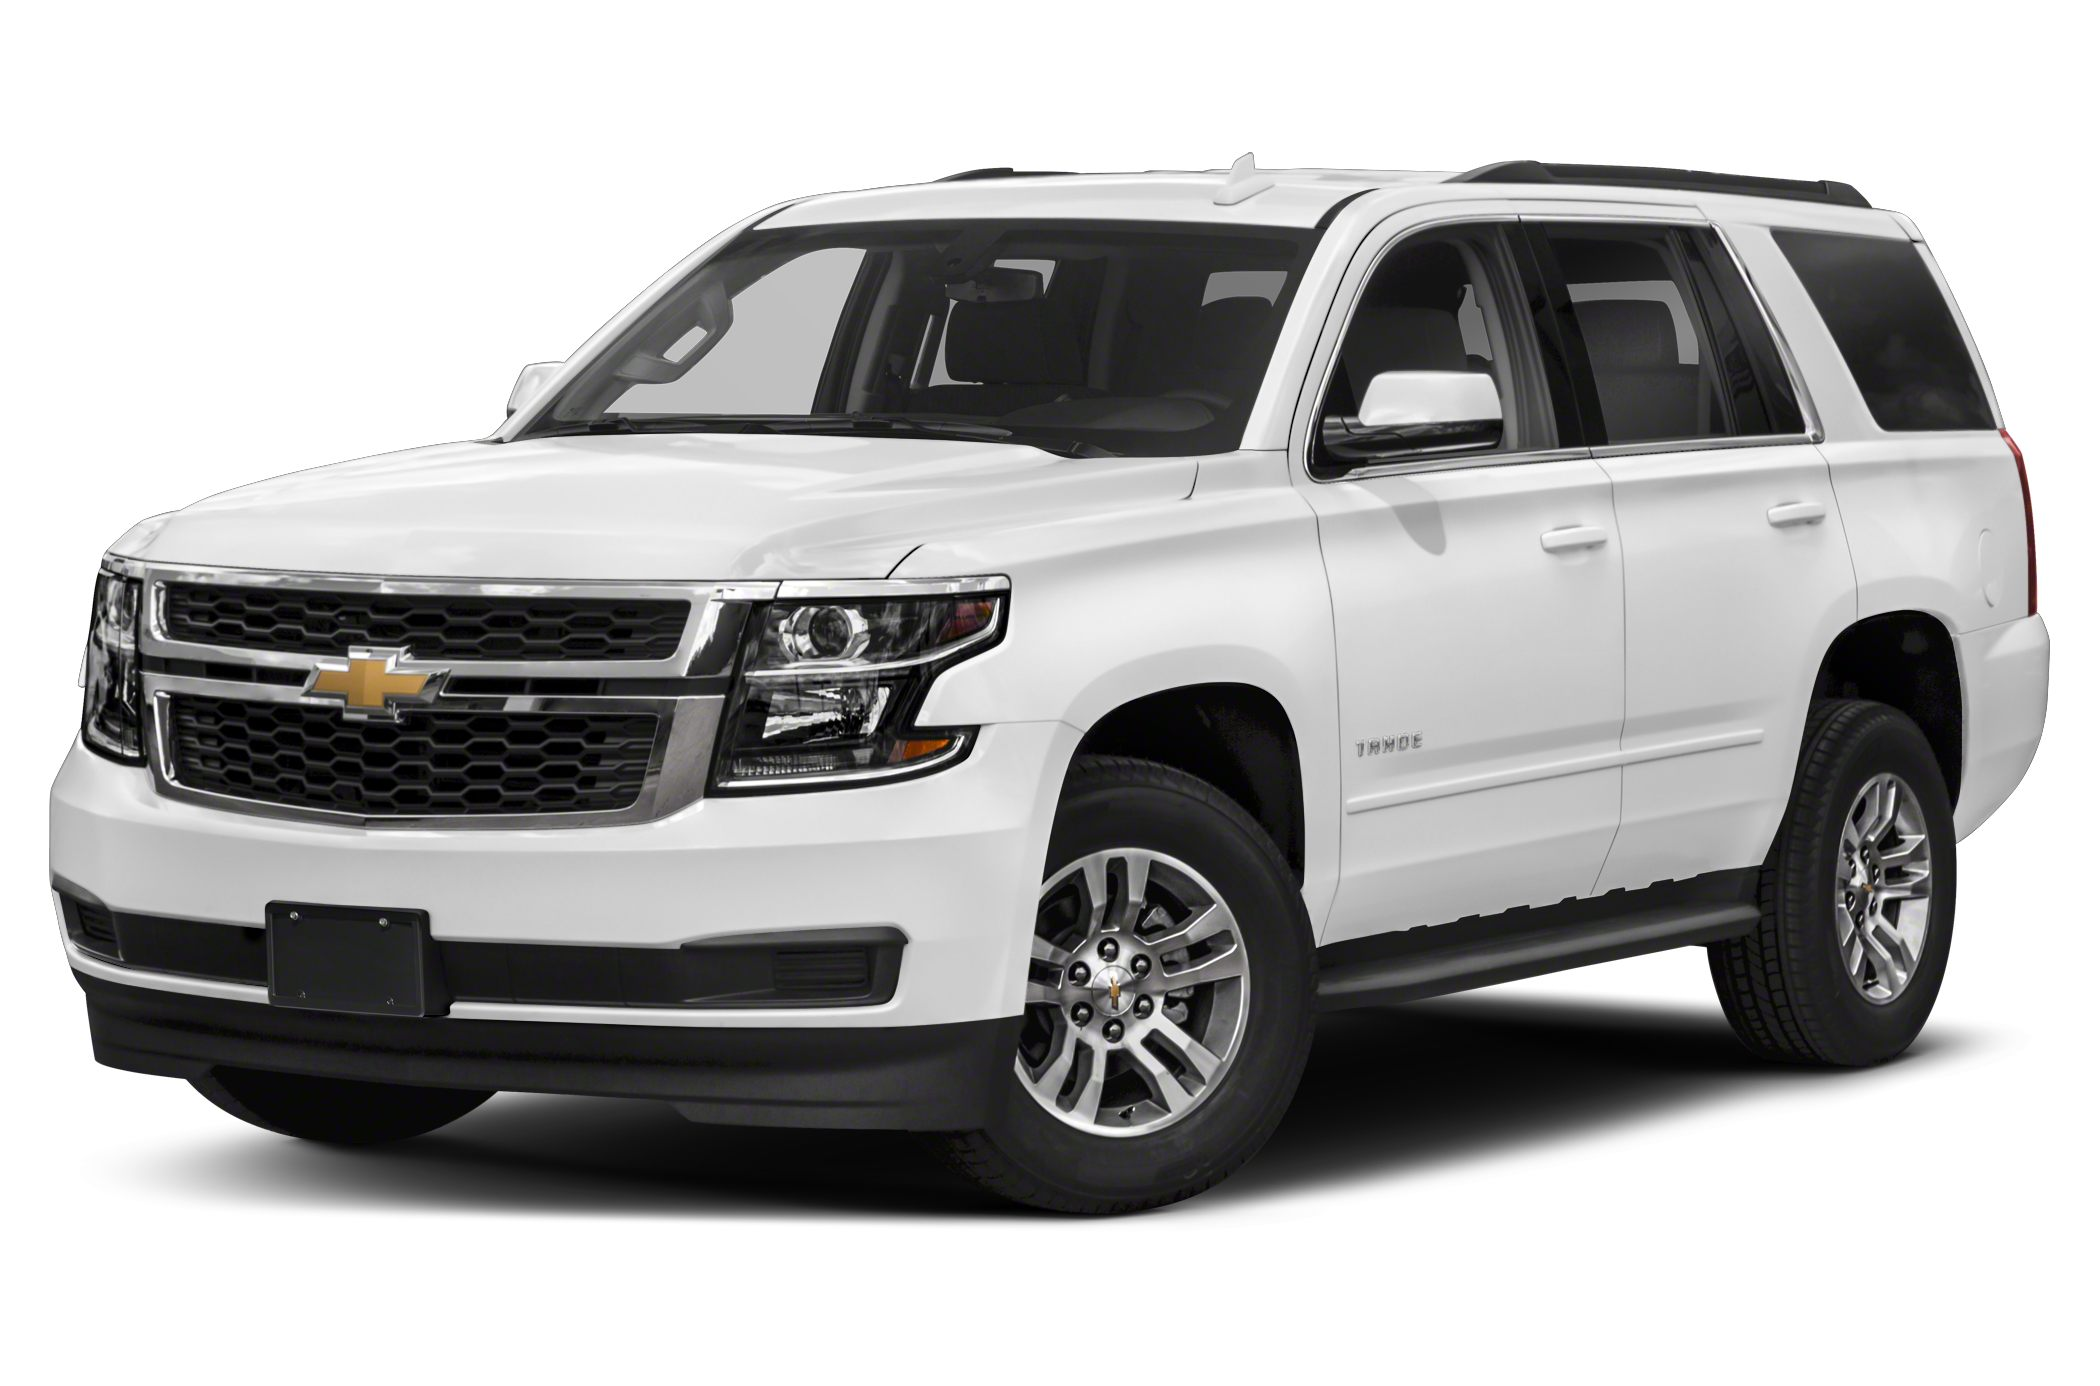 2018 Chevrolet Tahoe LT 4WD 6-Speed Automatic EcoTec3 53L V8 Flex Fuel 4WD Black Leather 2nd Ro